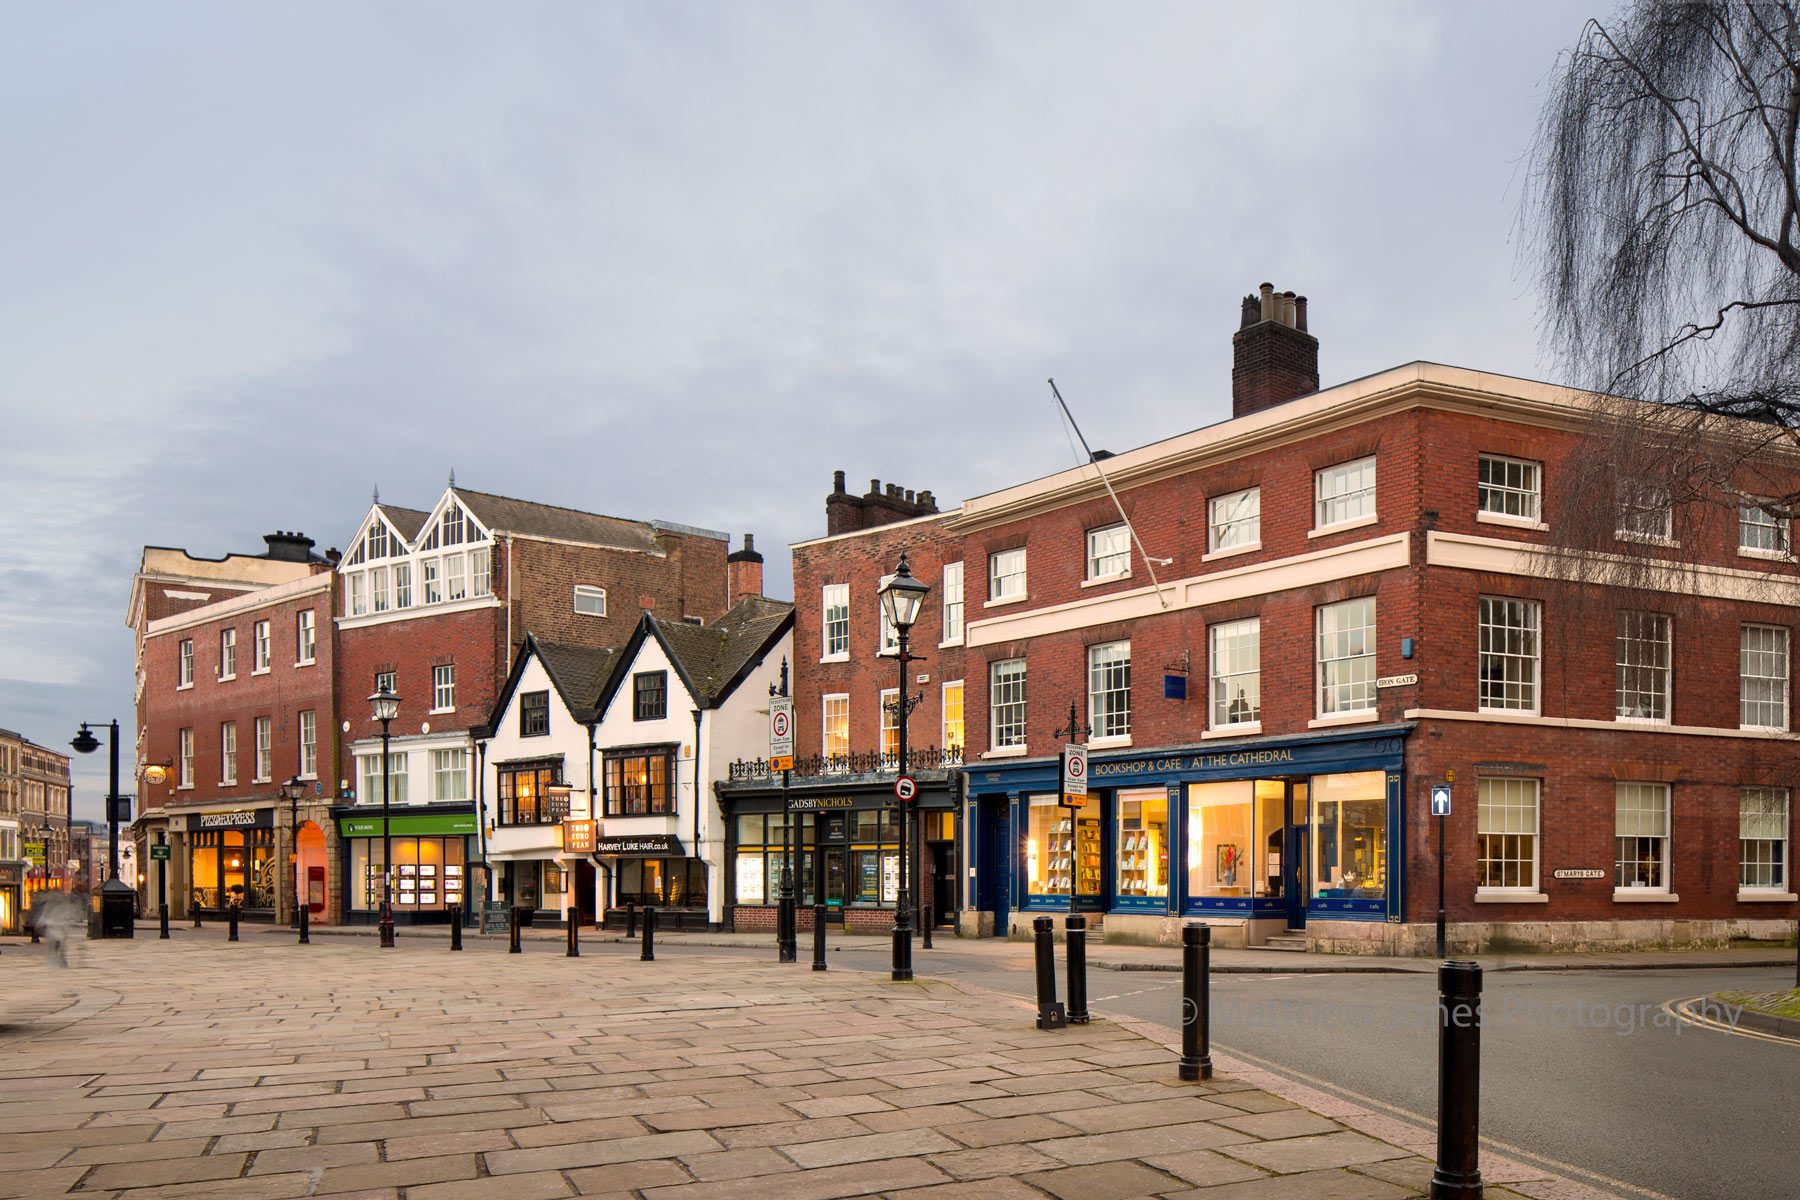 Shops, cafe's and restraunts at the top end of Friar Gate